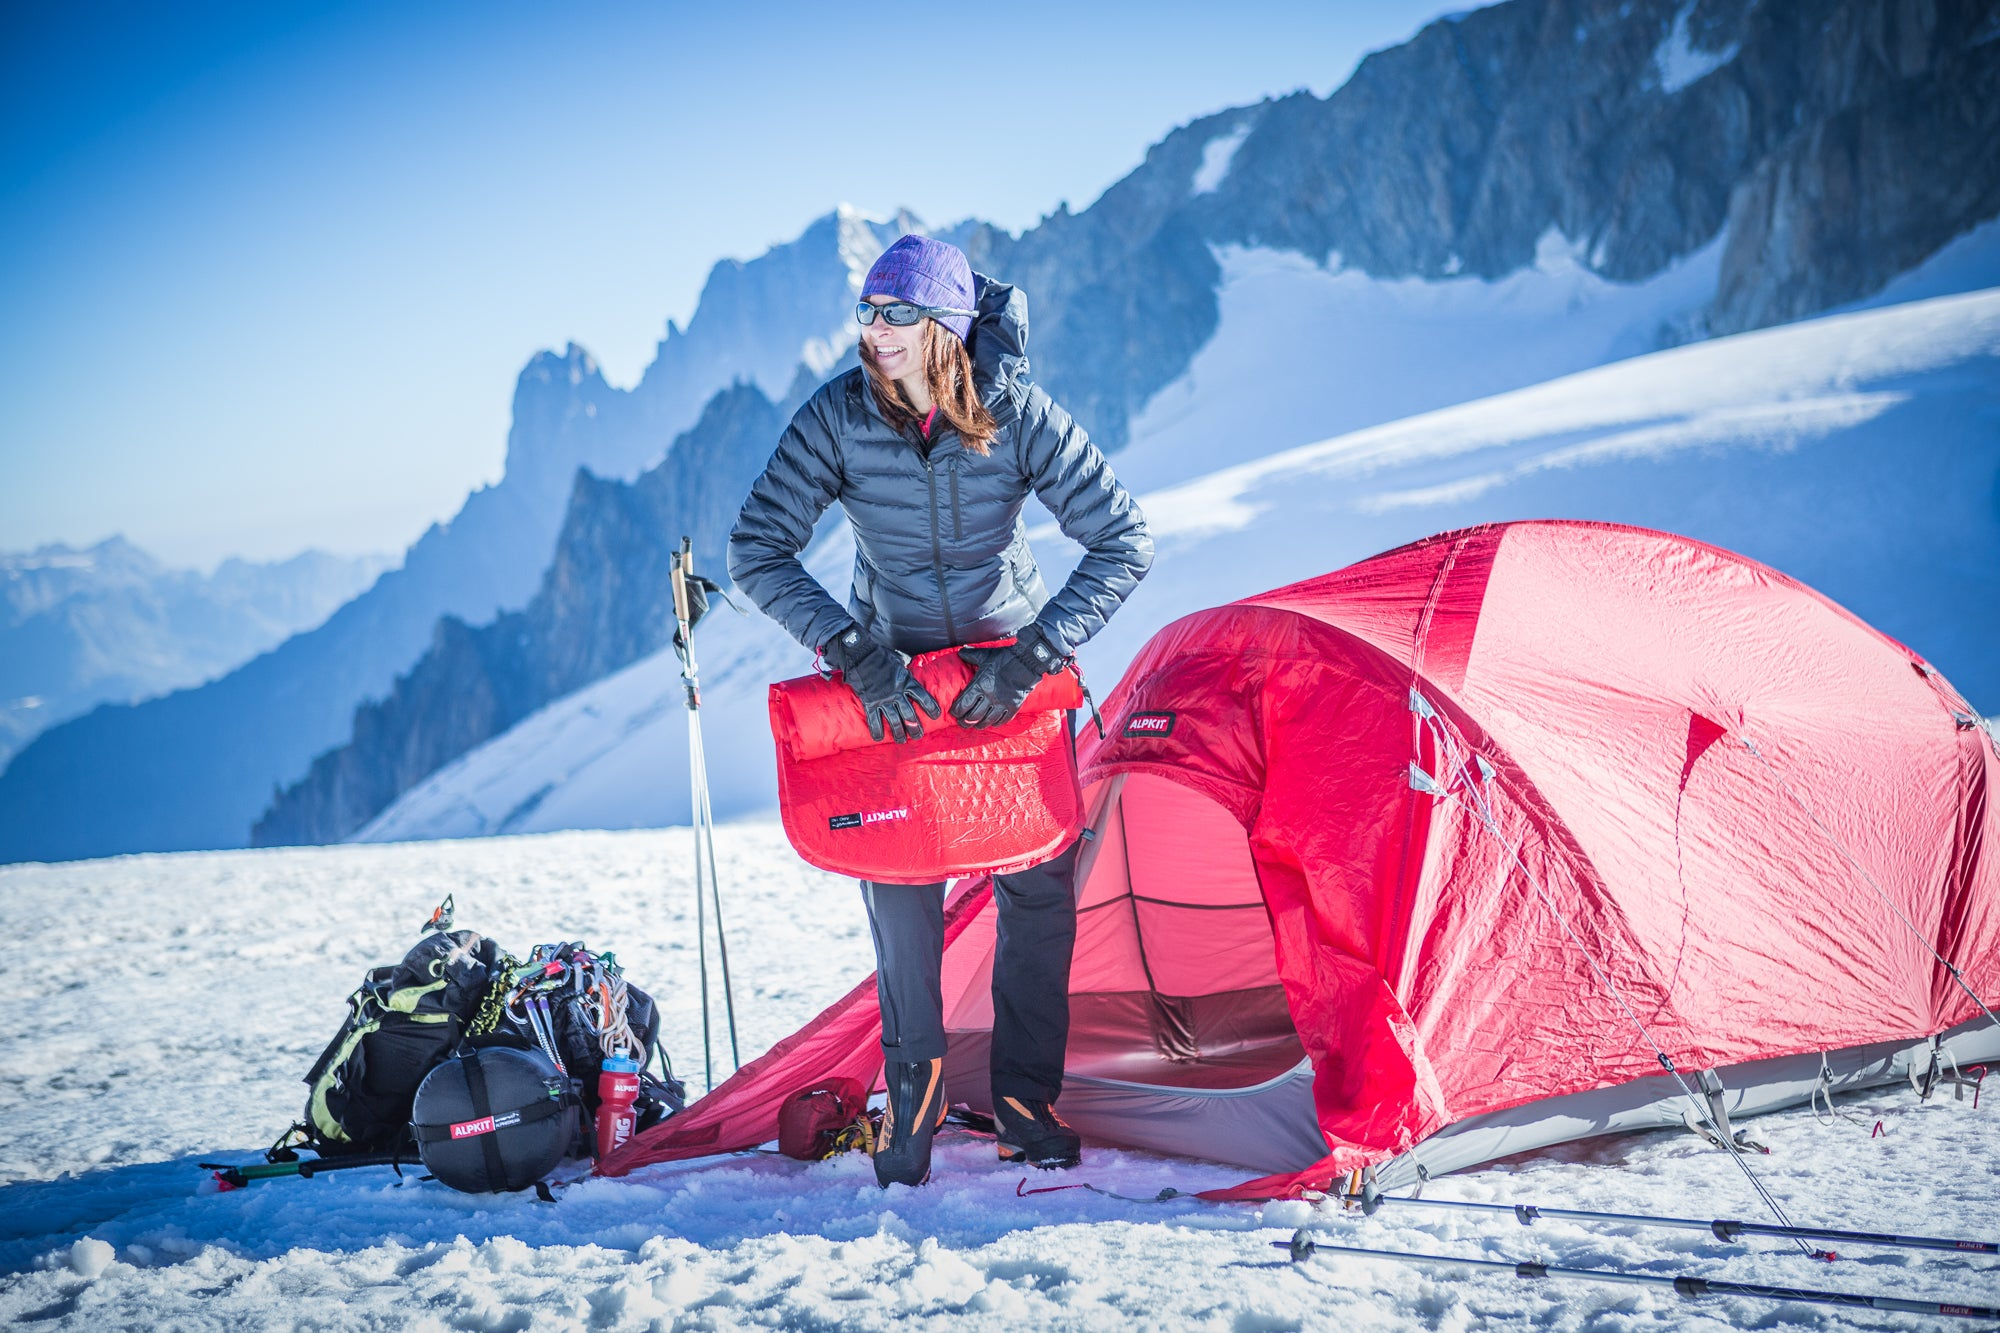 Rolling up an Airo 180 sleeping mat, camping on the snow in the mountains near Chamonix